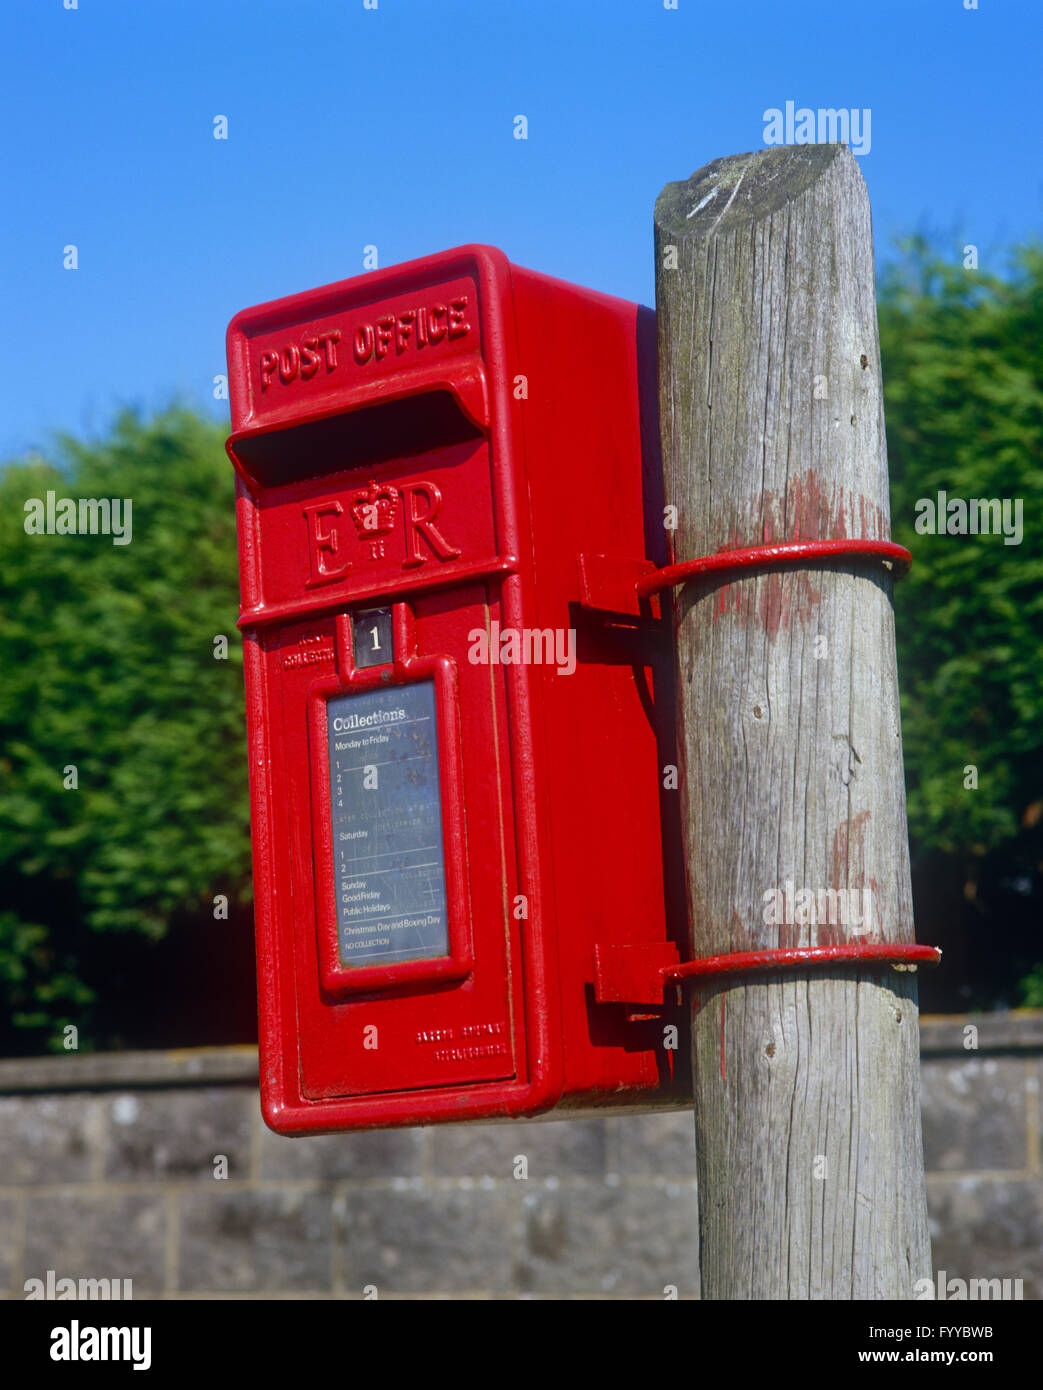 Red postbox on a wooden stick, outside. - Stock Image